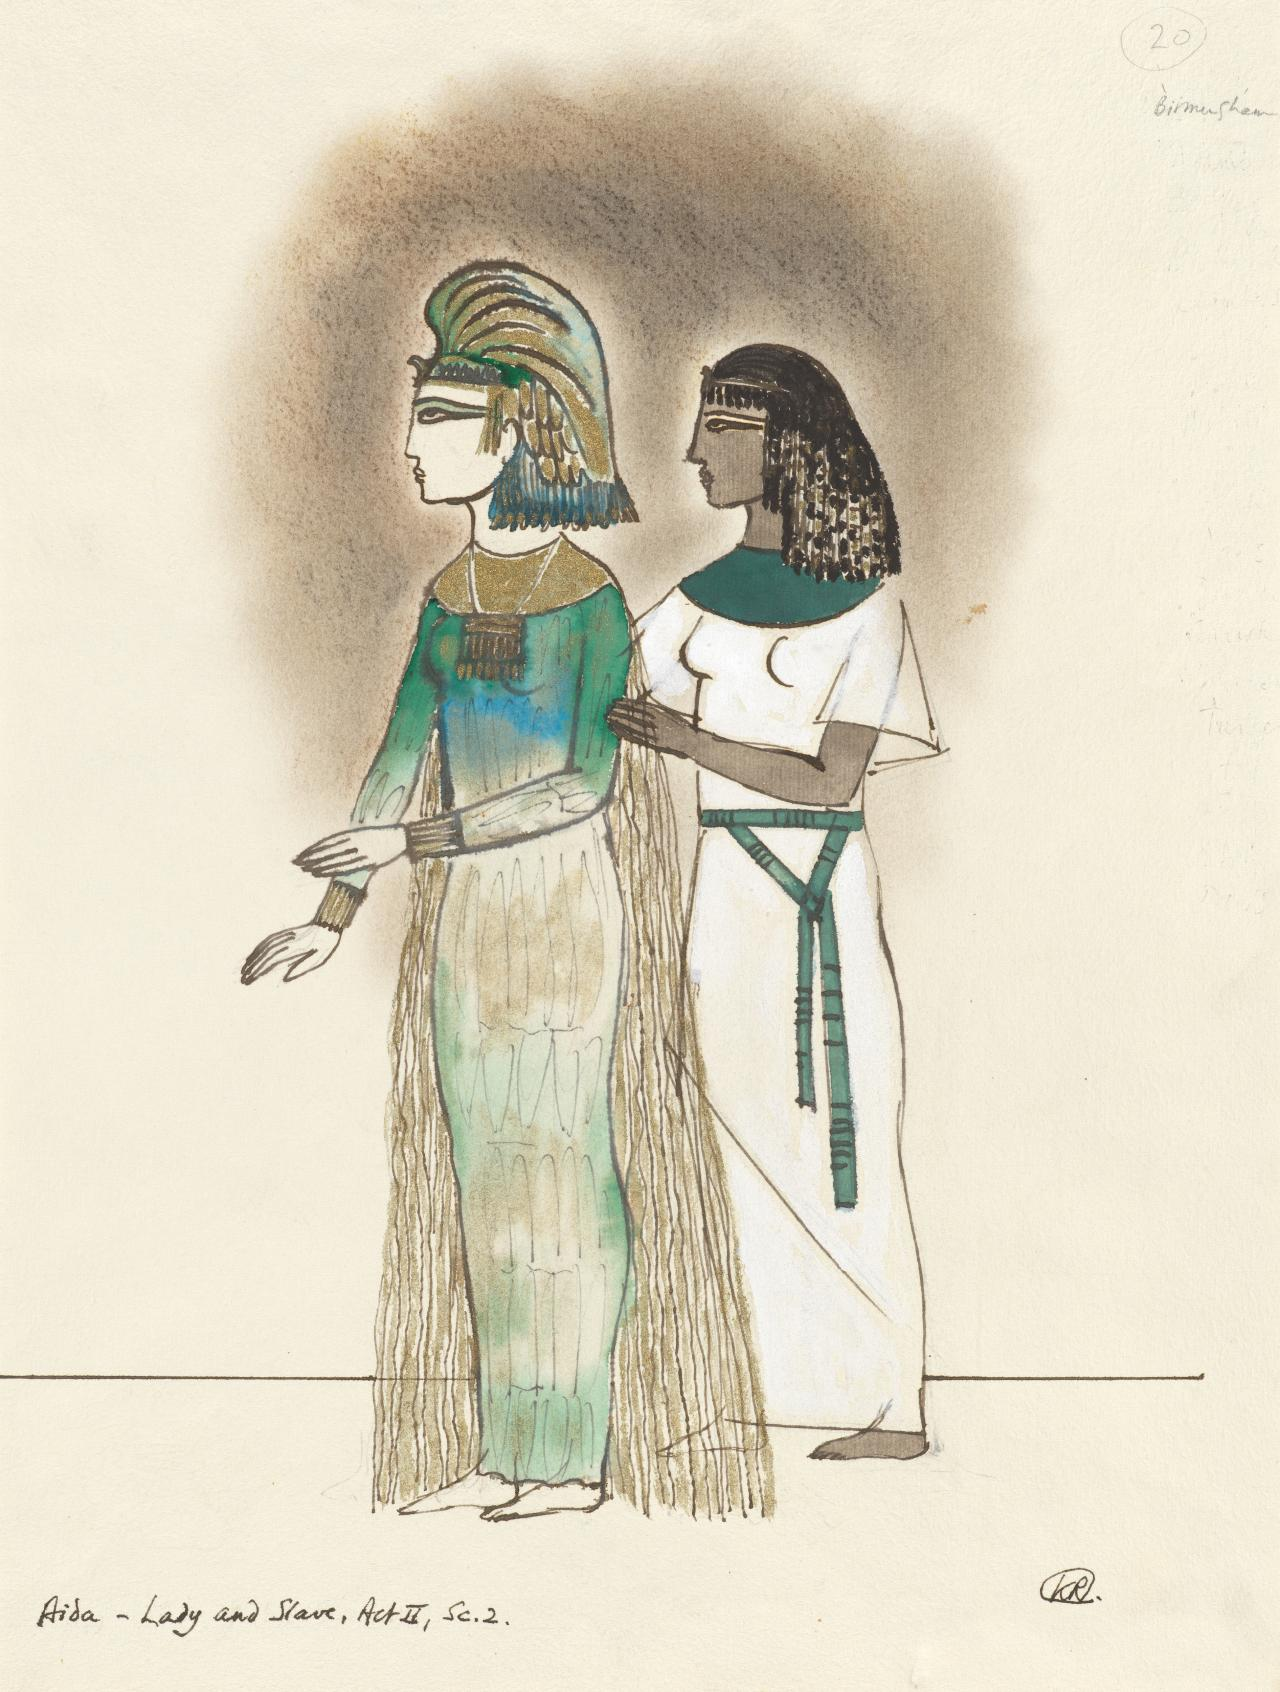 Costume designs for Aida, Lady and slave, Act II, Scene II